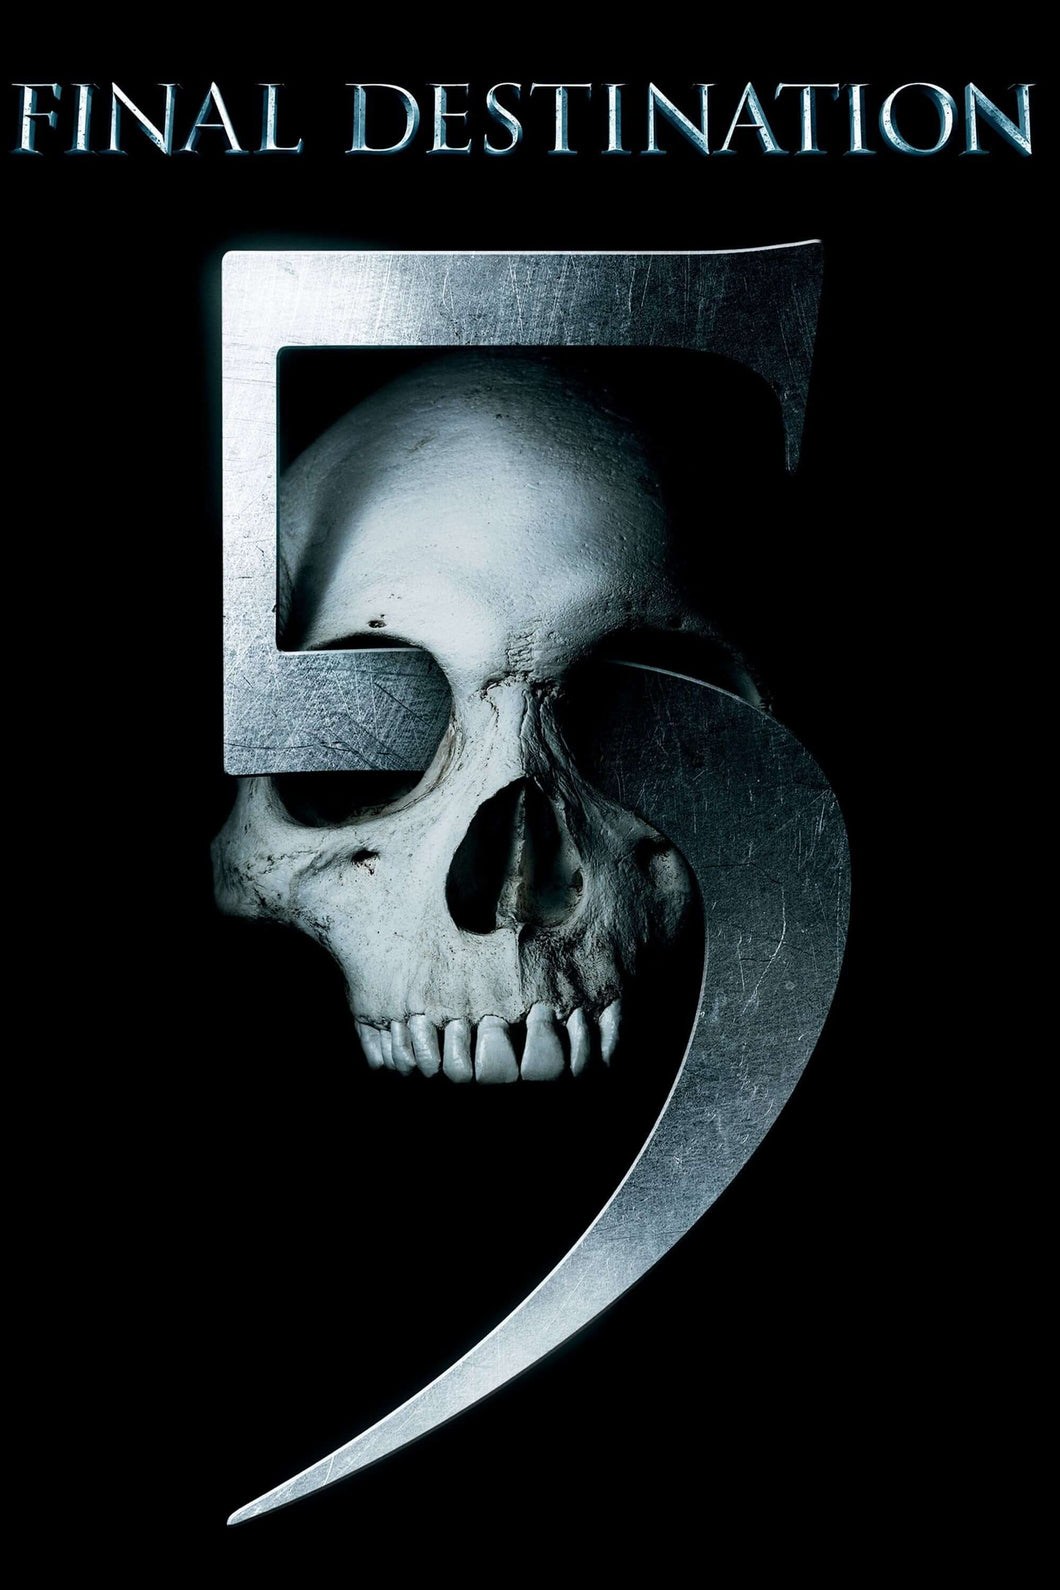 Final Destination 5 | HD Movies Anywhere Code Ports to Vudu, iTunes, GP - Movie Sometimes